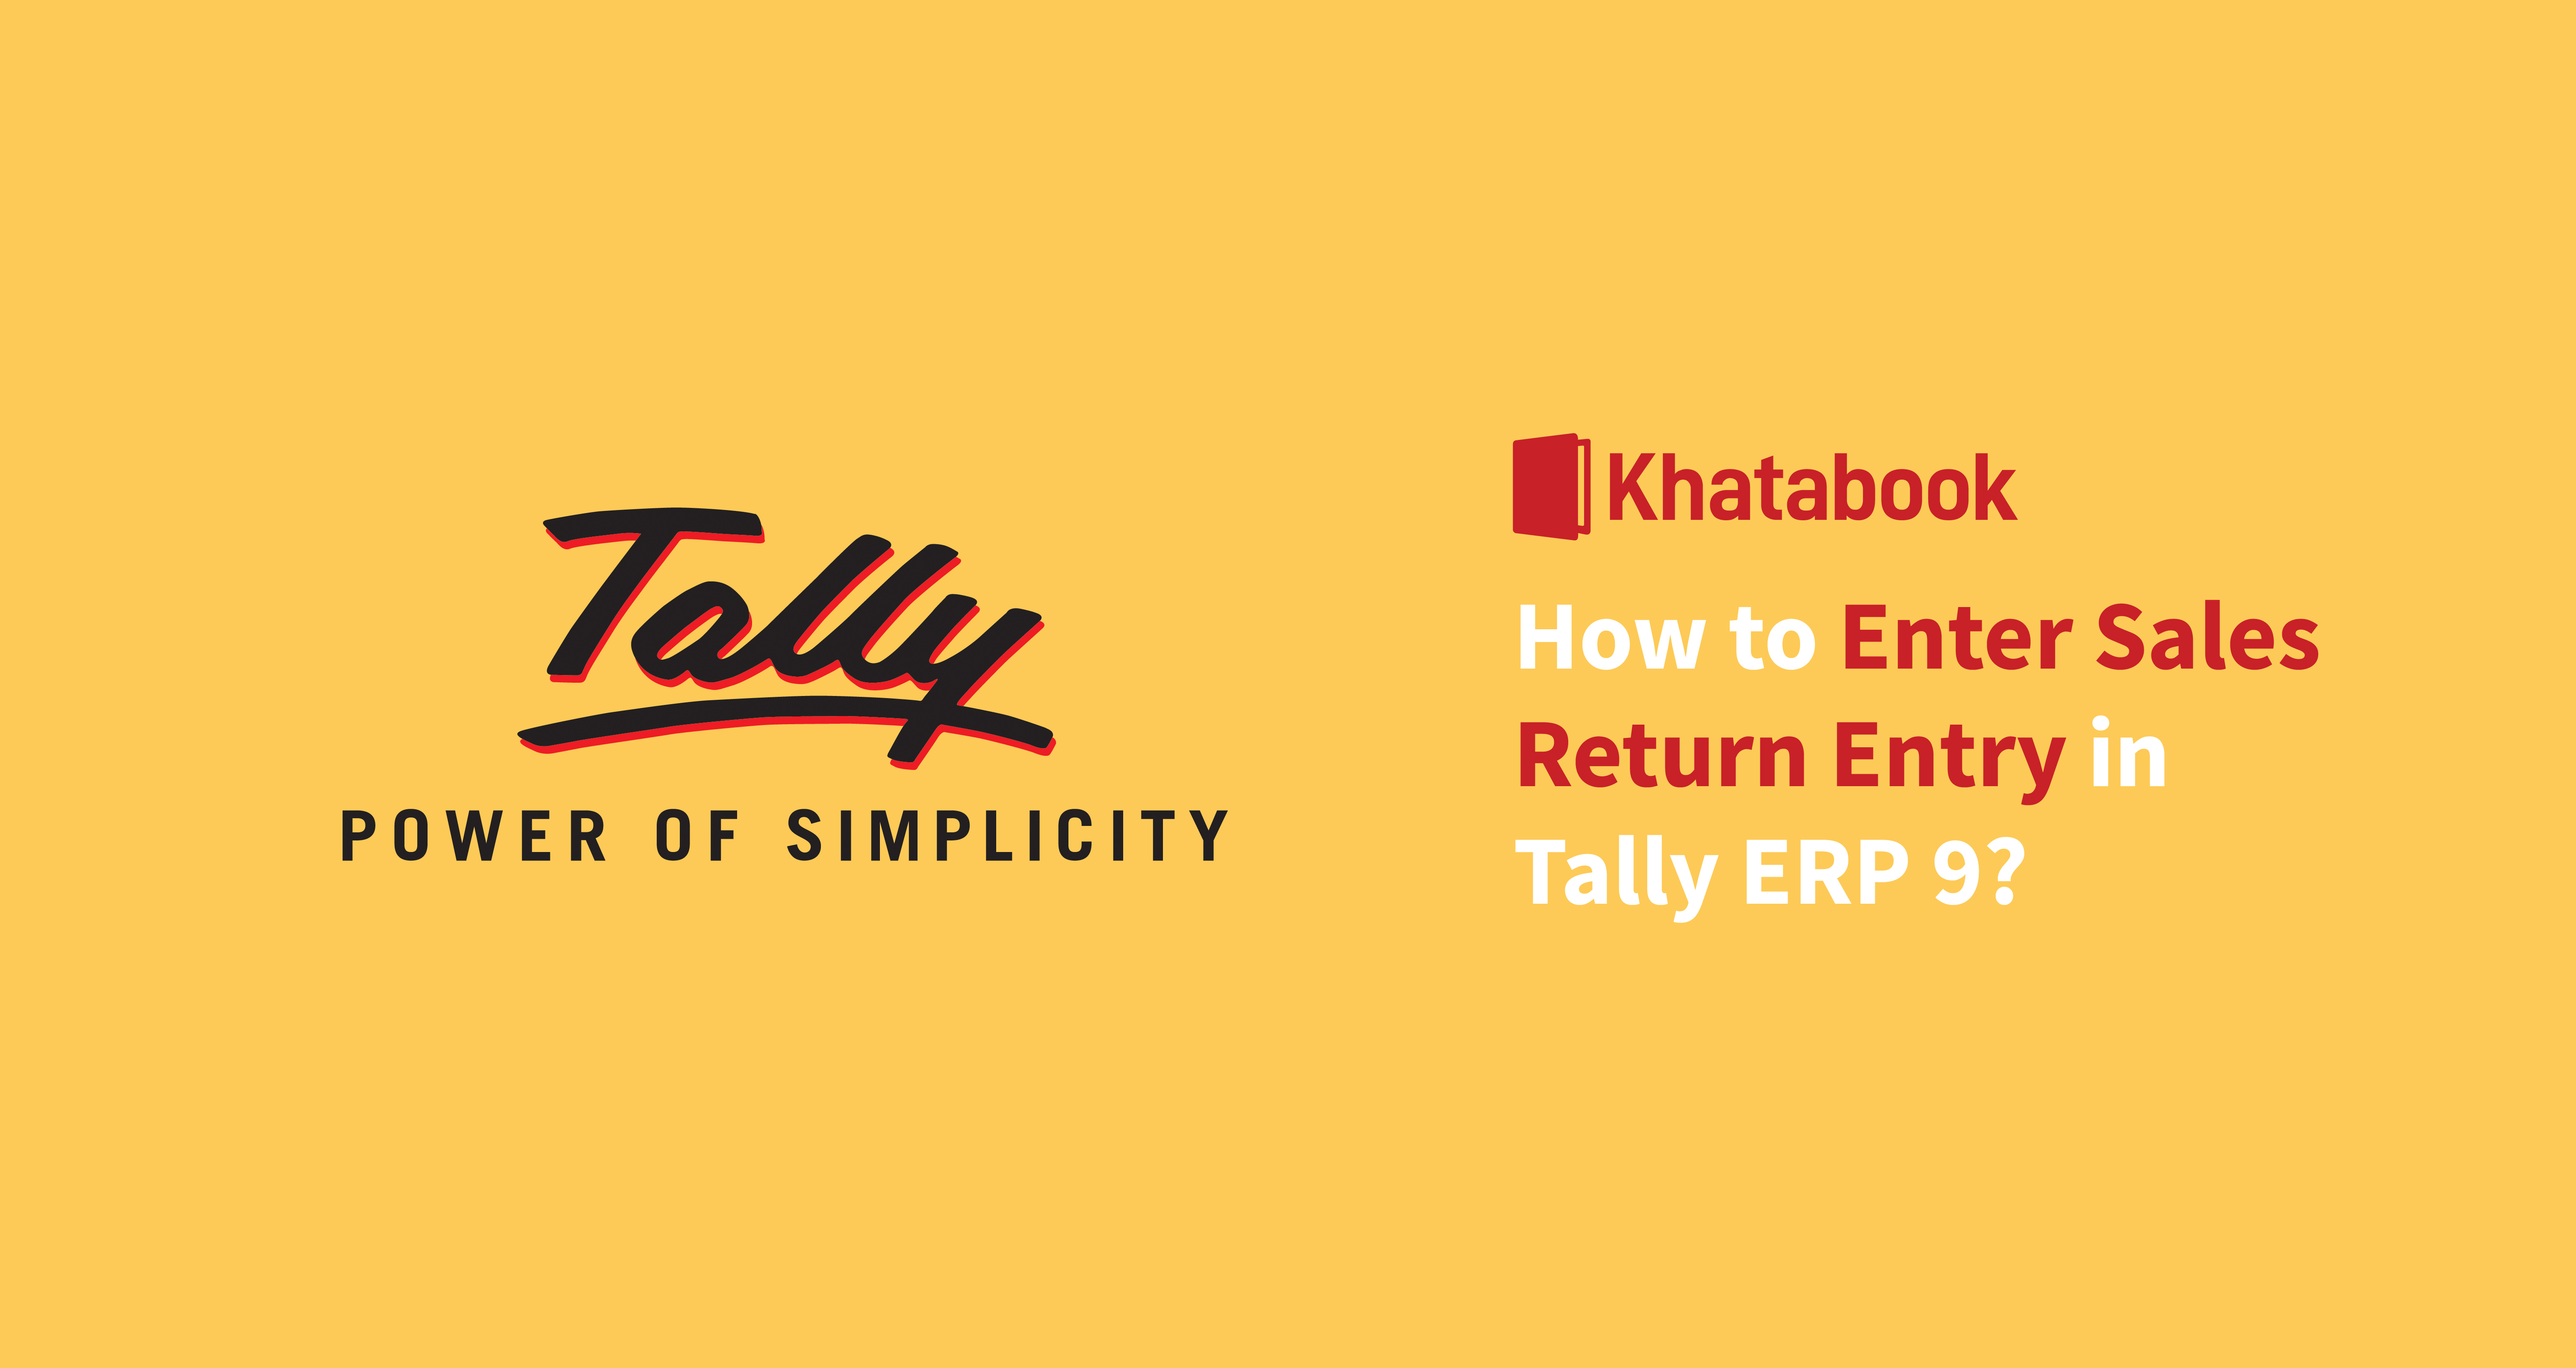 How to Enter Sales Return Entry in Tally ERP 9?